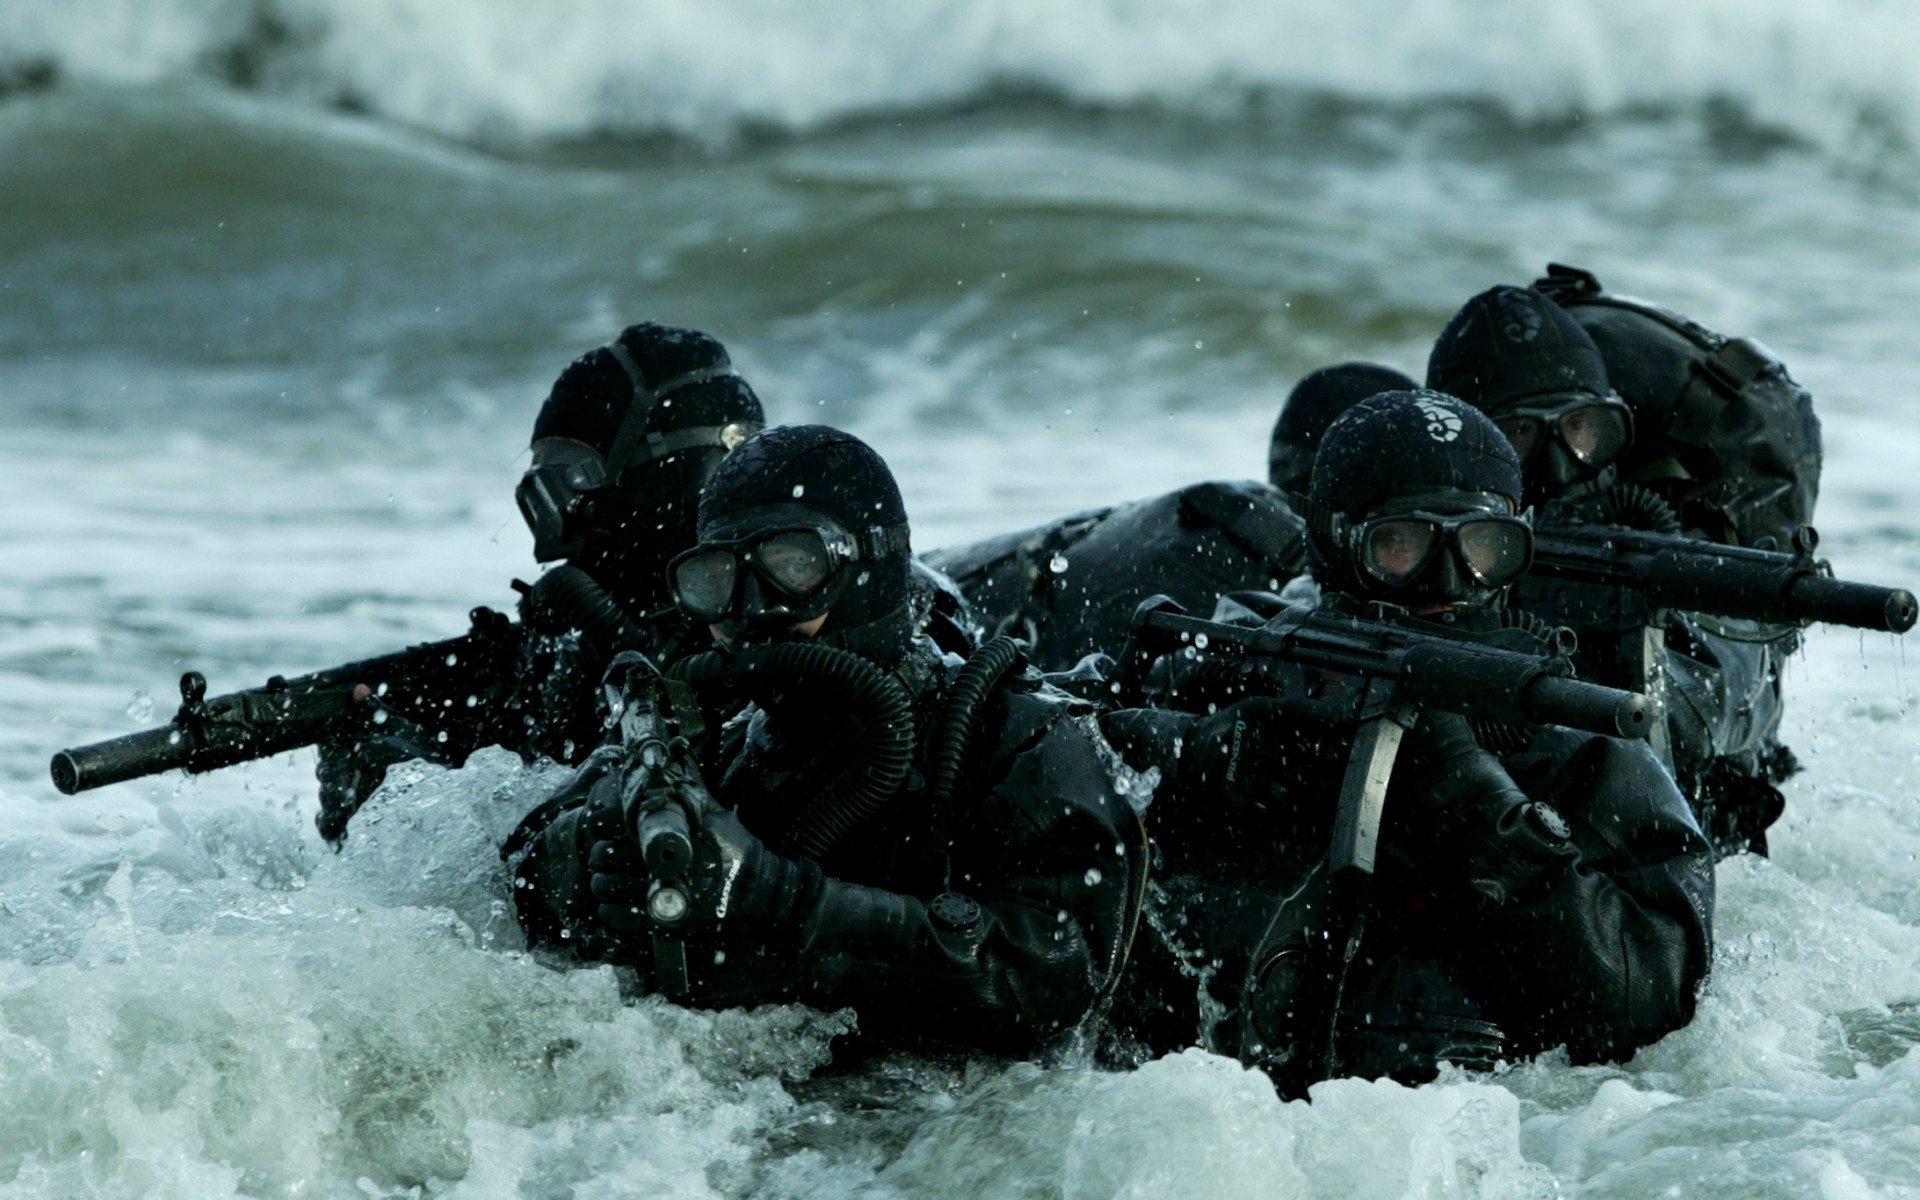 United States Navy SEALs HD wallpaper HD Latest Wallpapers 1920x1200